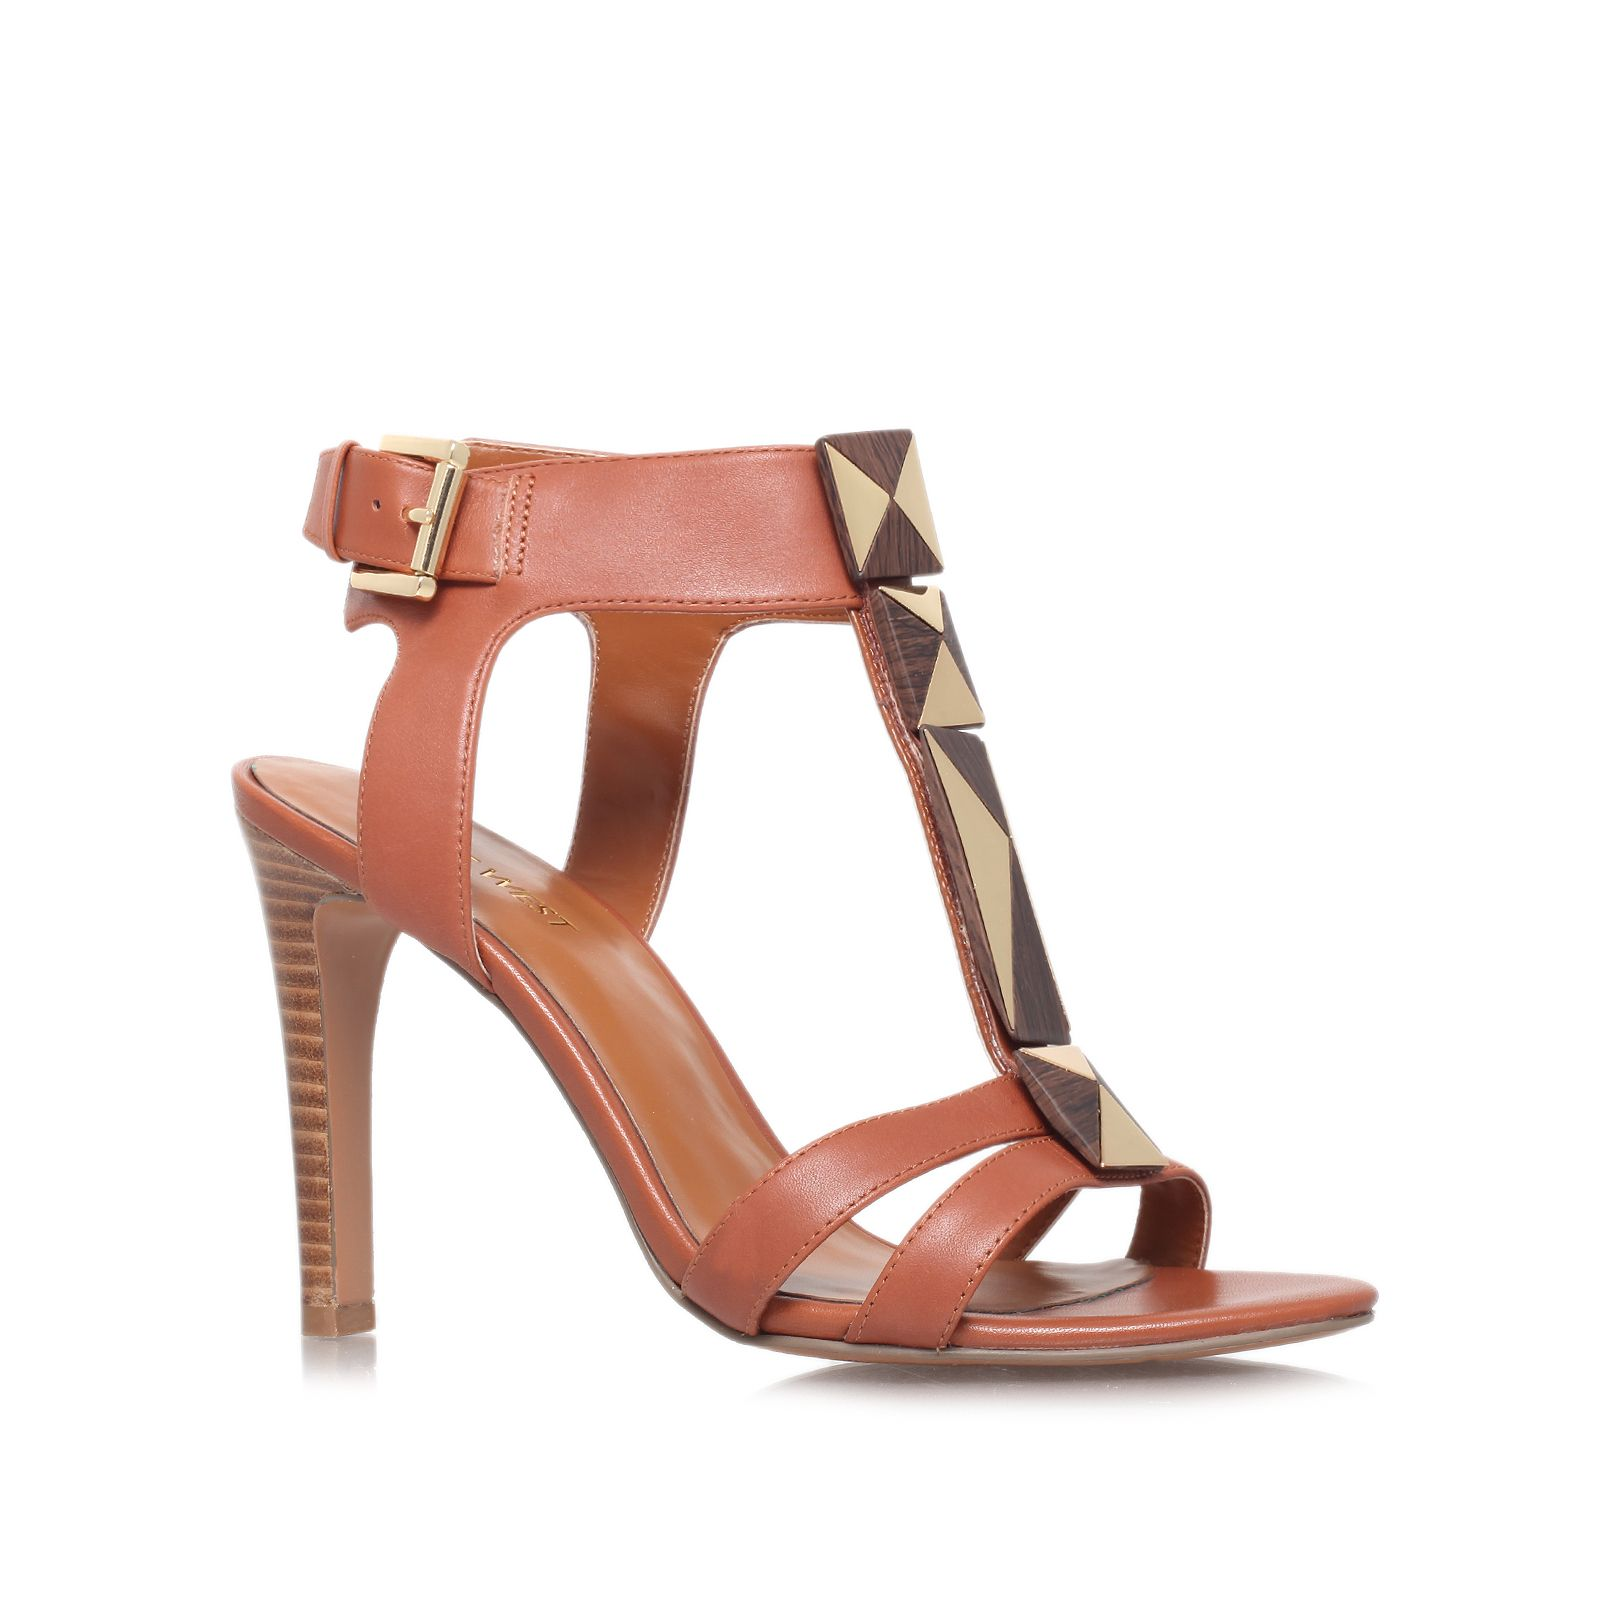 Emogen high heeled sandals